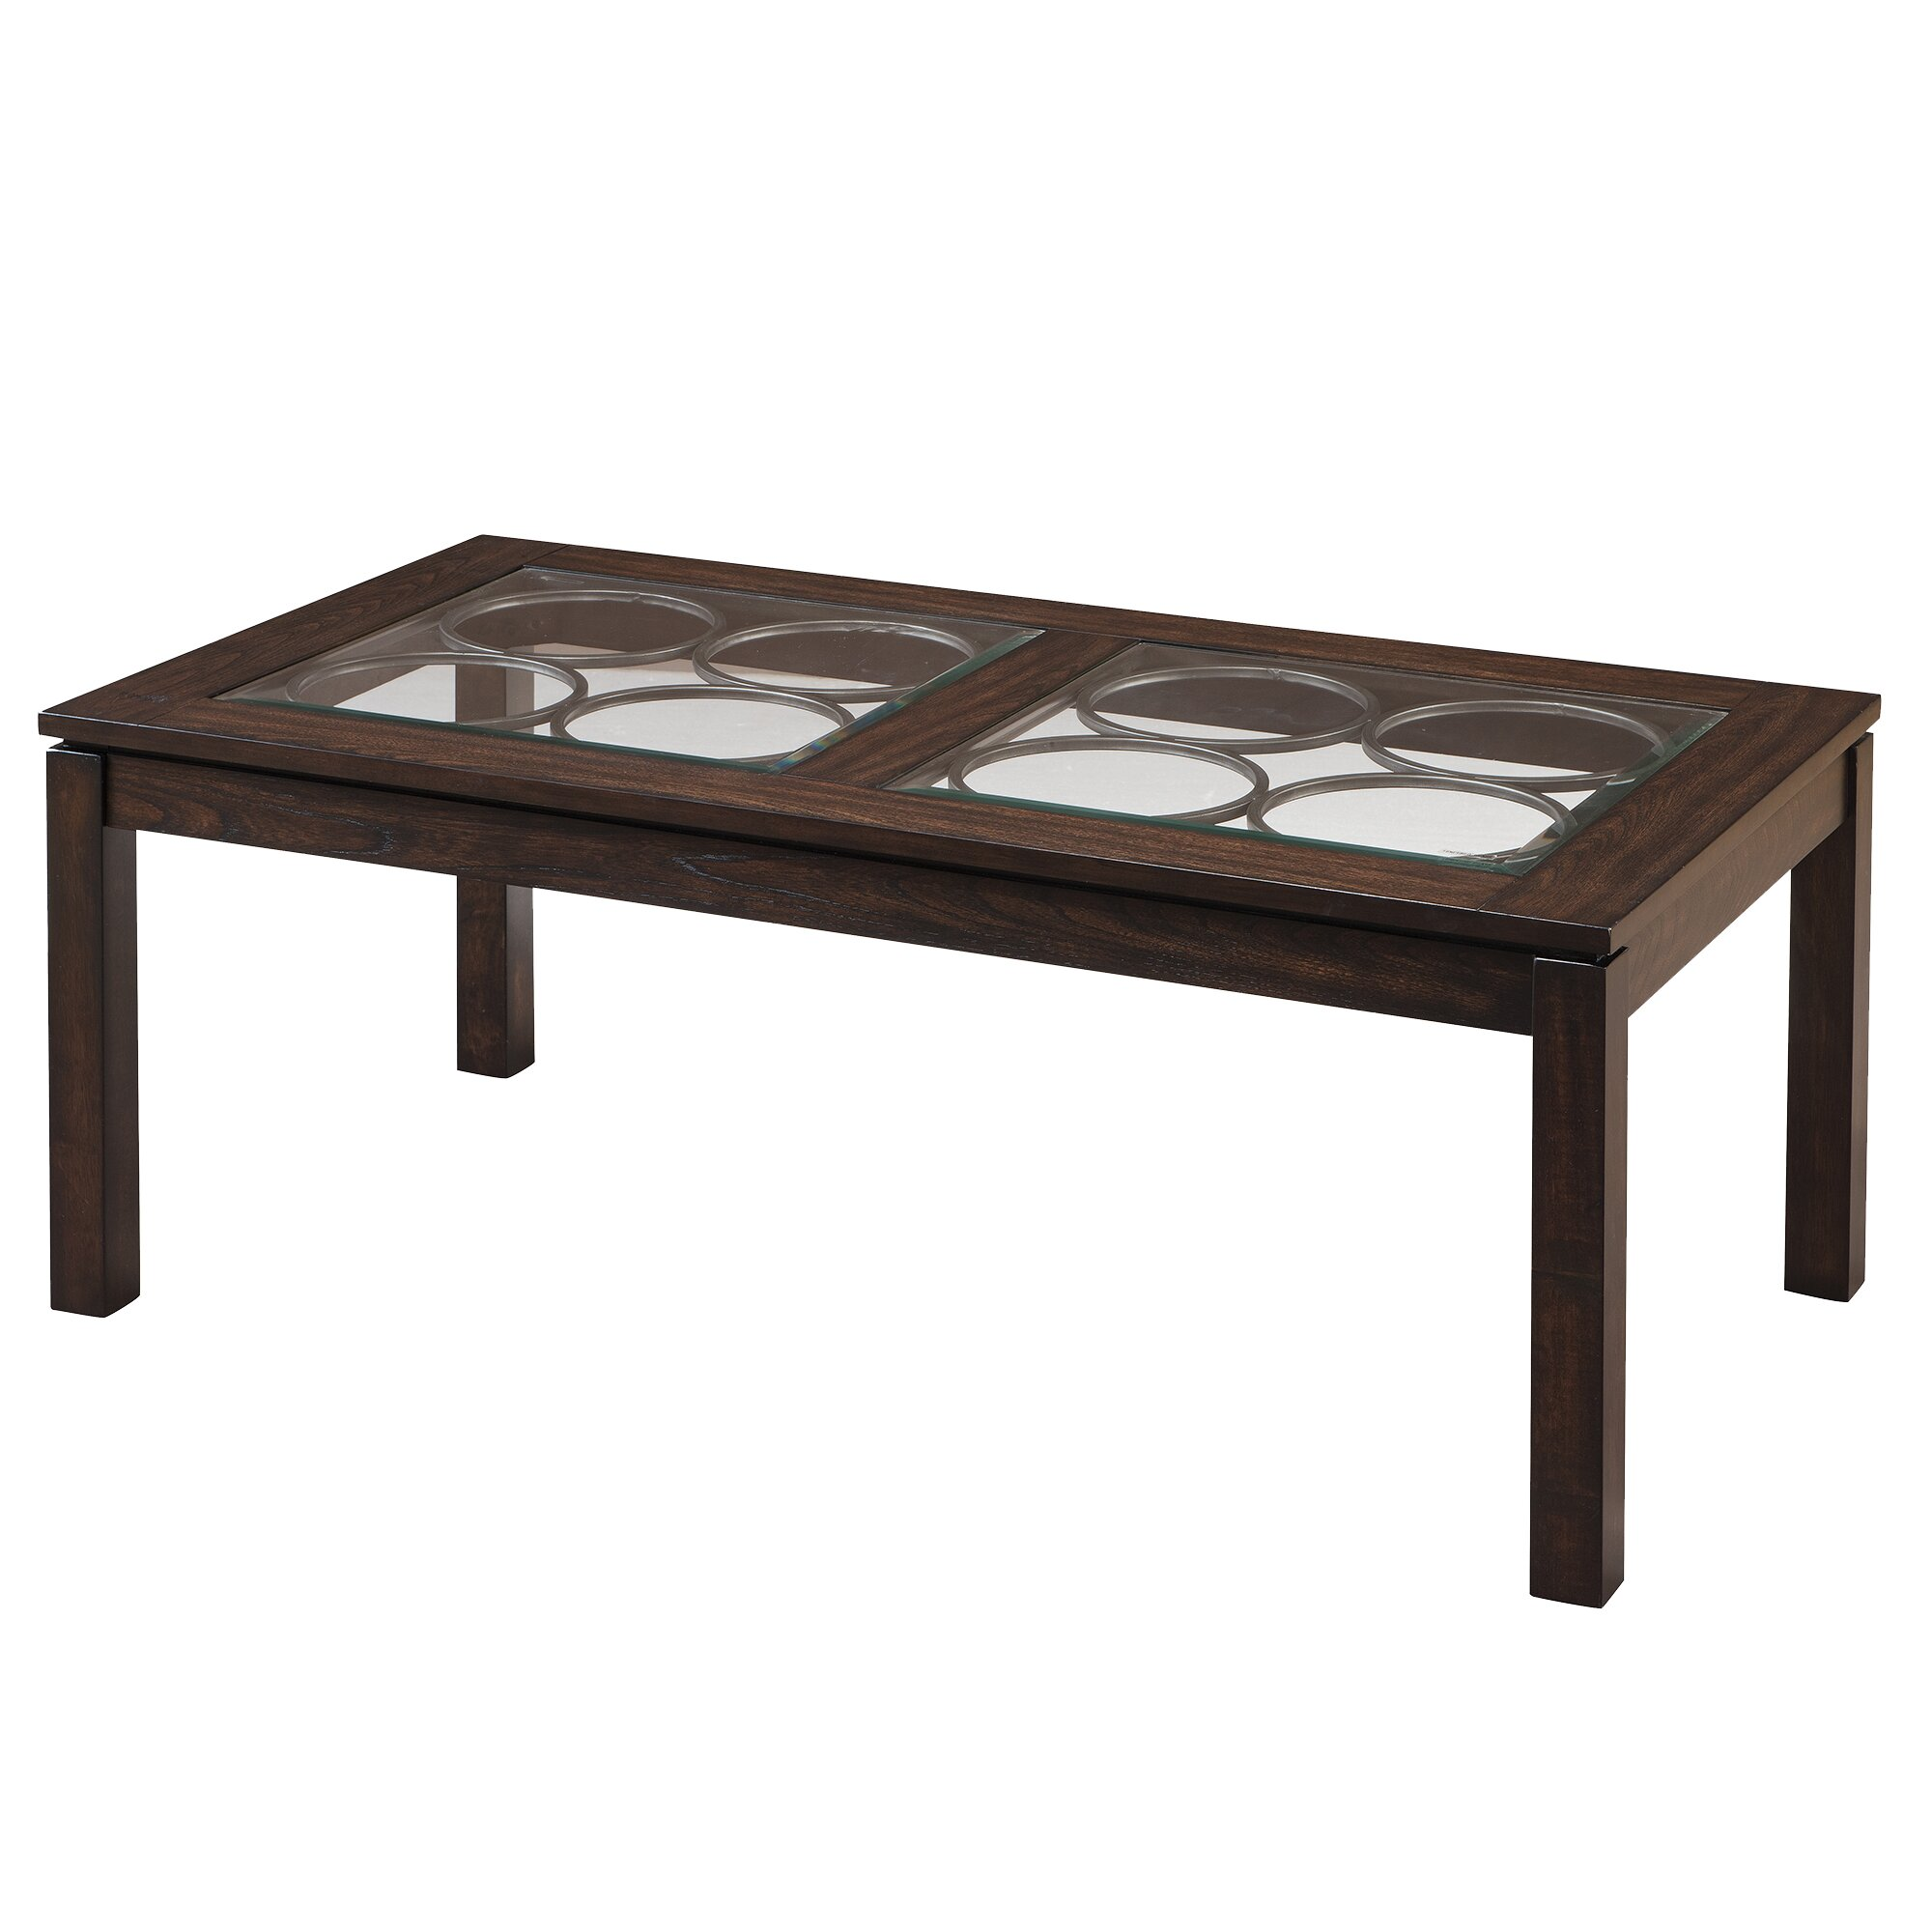 Coffee Table Wayfair Bernhardt Freeport Coffee Table Reviews Wayfair Manchester Wood Coffee